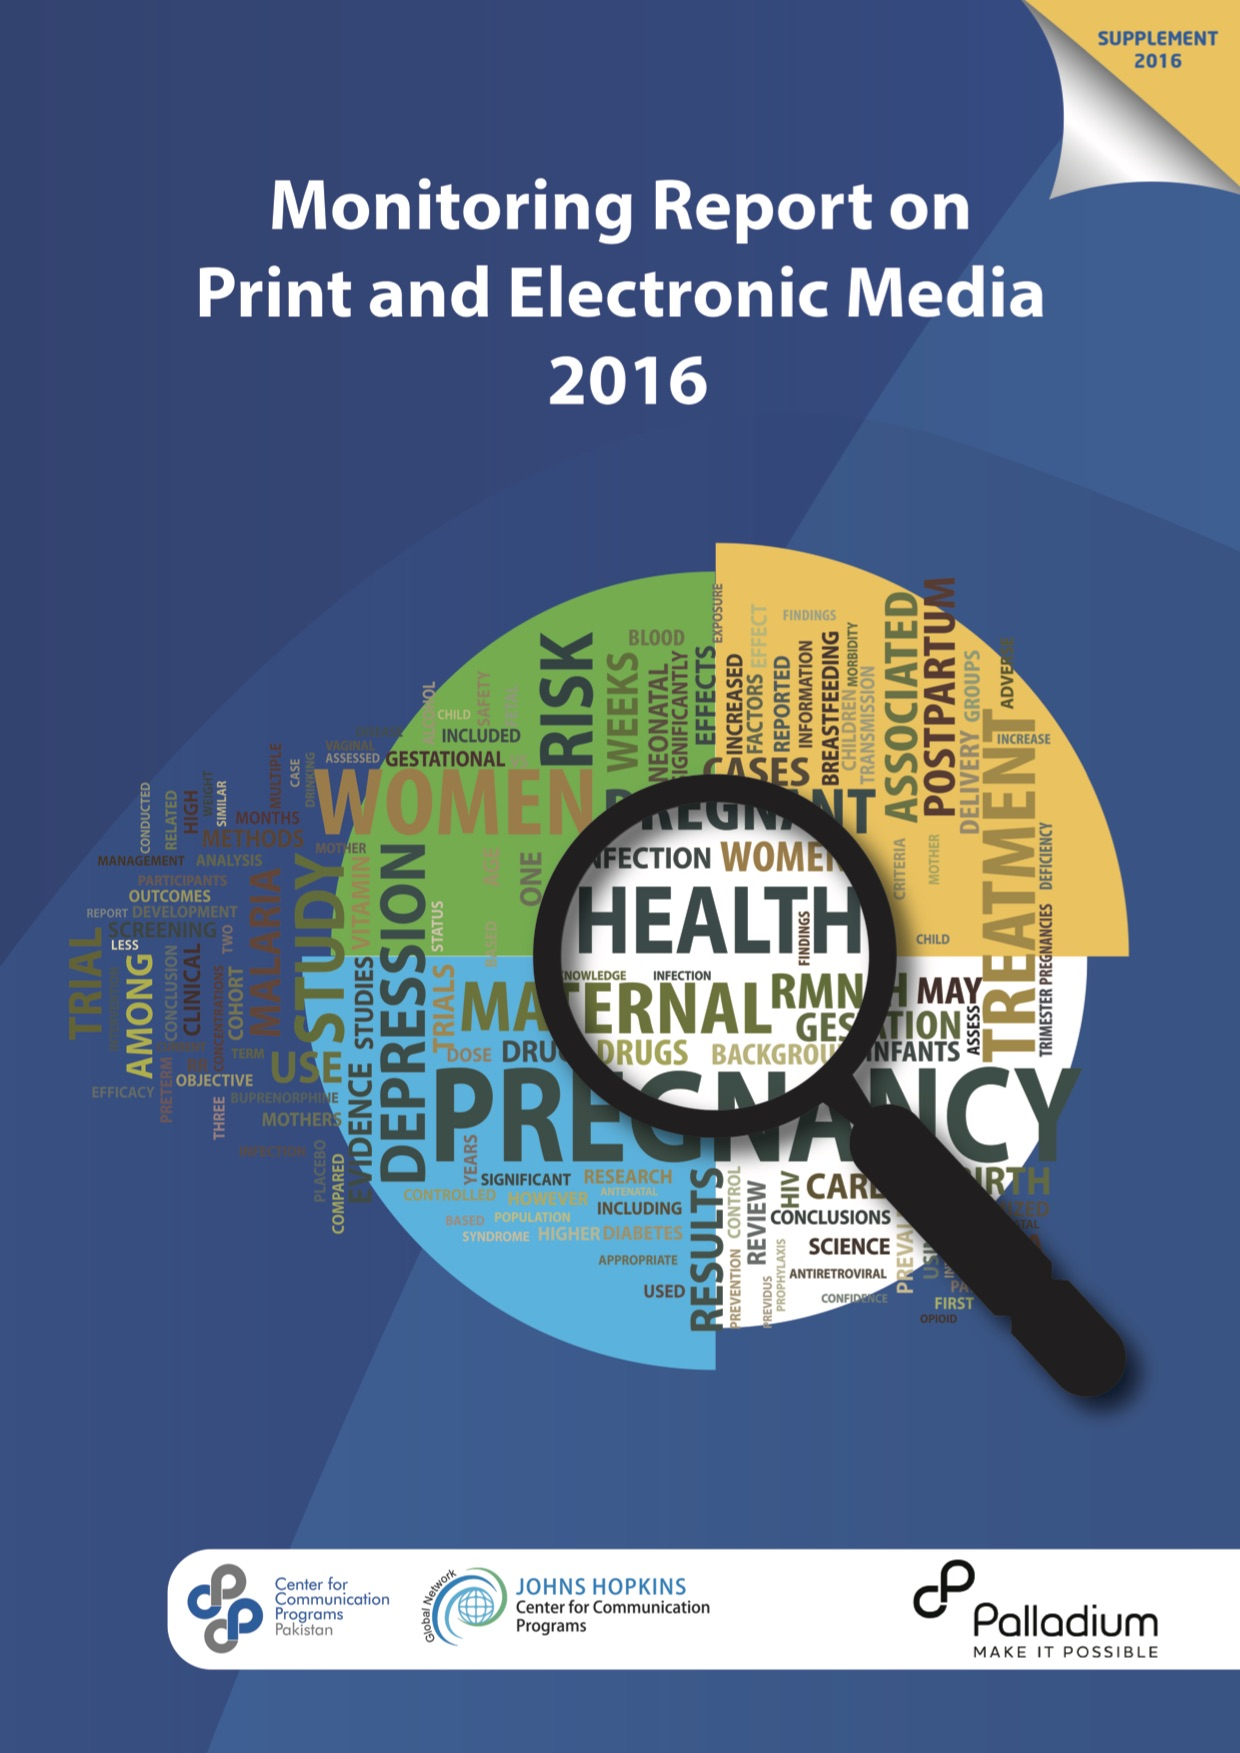 Monitoring Report on Print and Electronic Media 2016